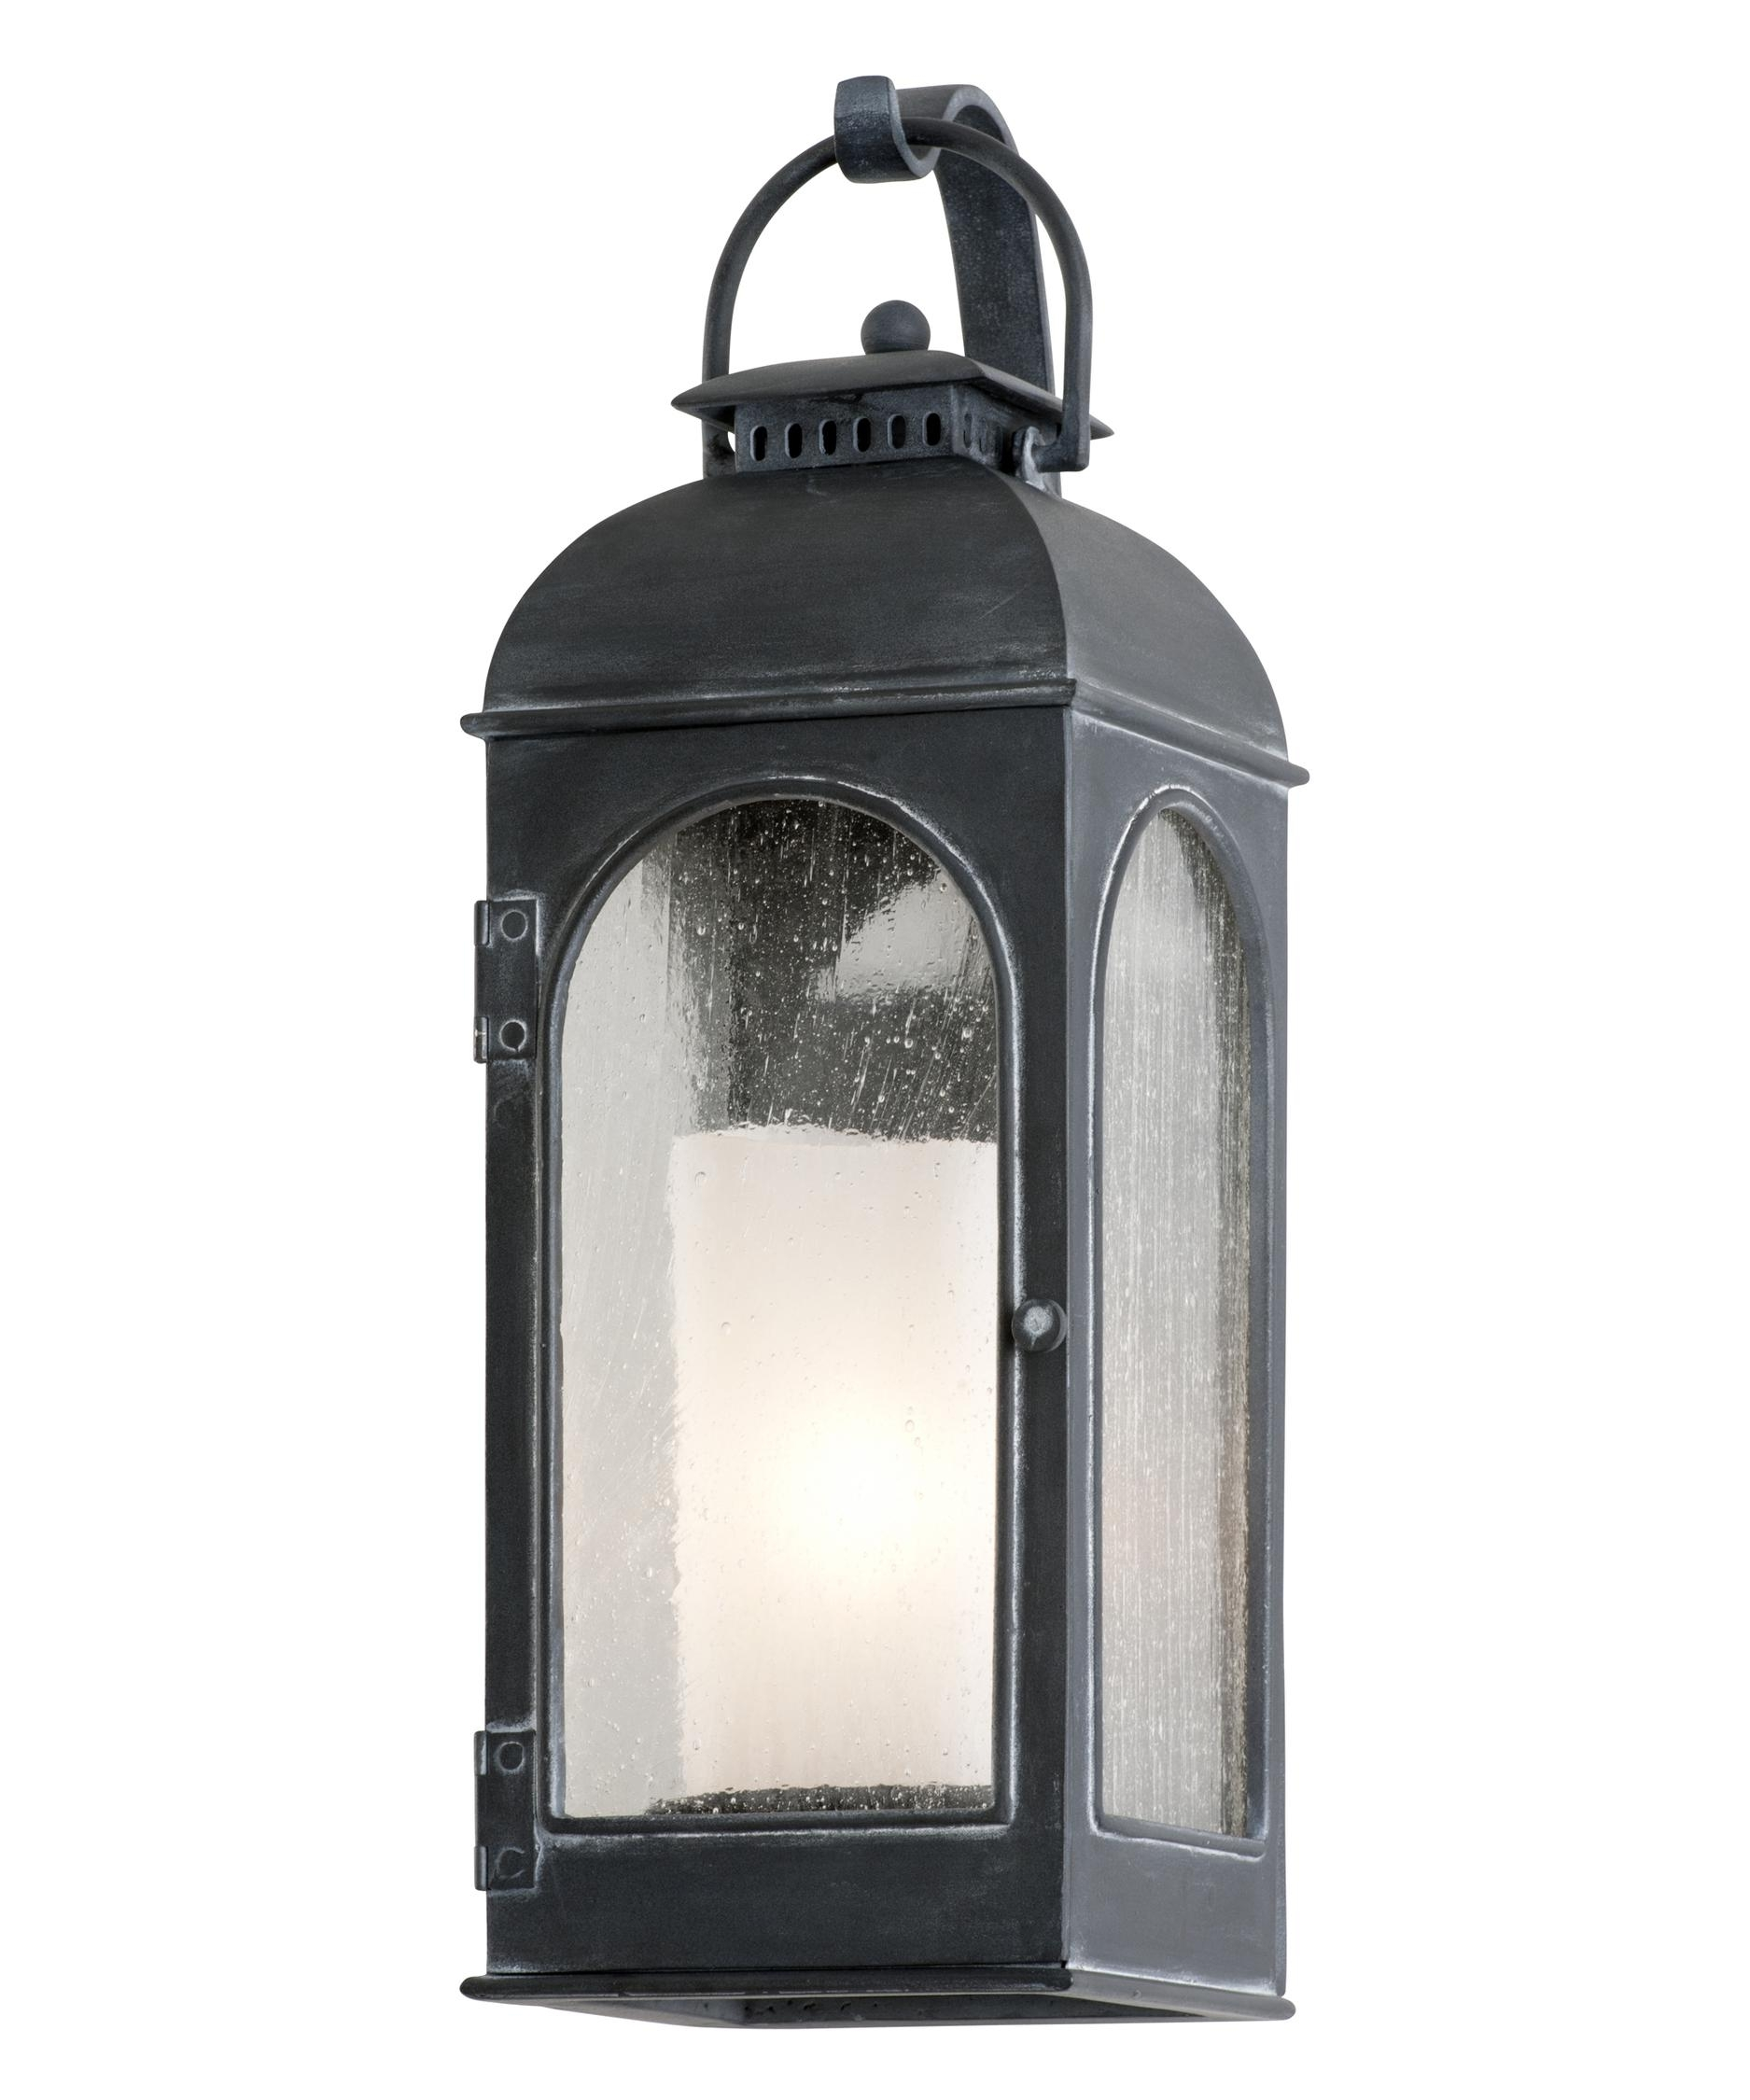 Troy Lighting B3281 Derby 6 Inch Wide 1 Light Outdoor Wall Light For Outdoor Lanterns At Bunnings (View 17 of 20)